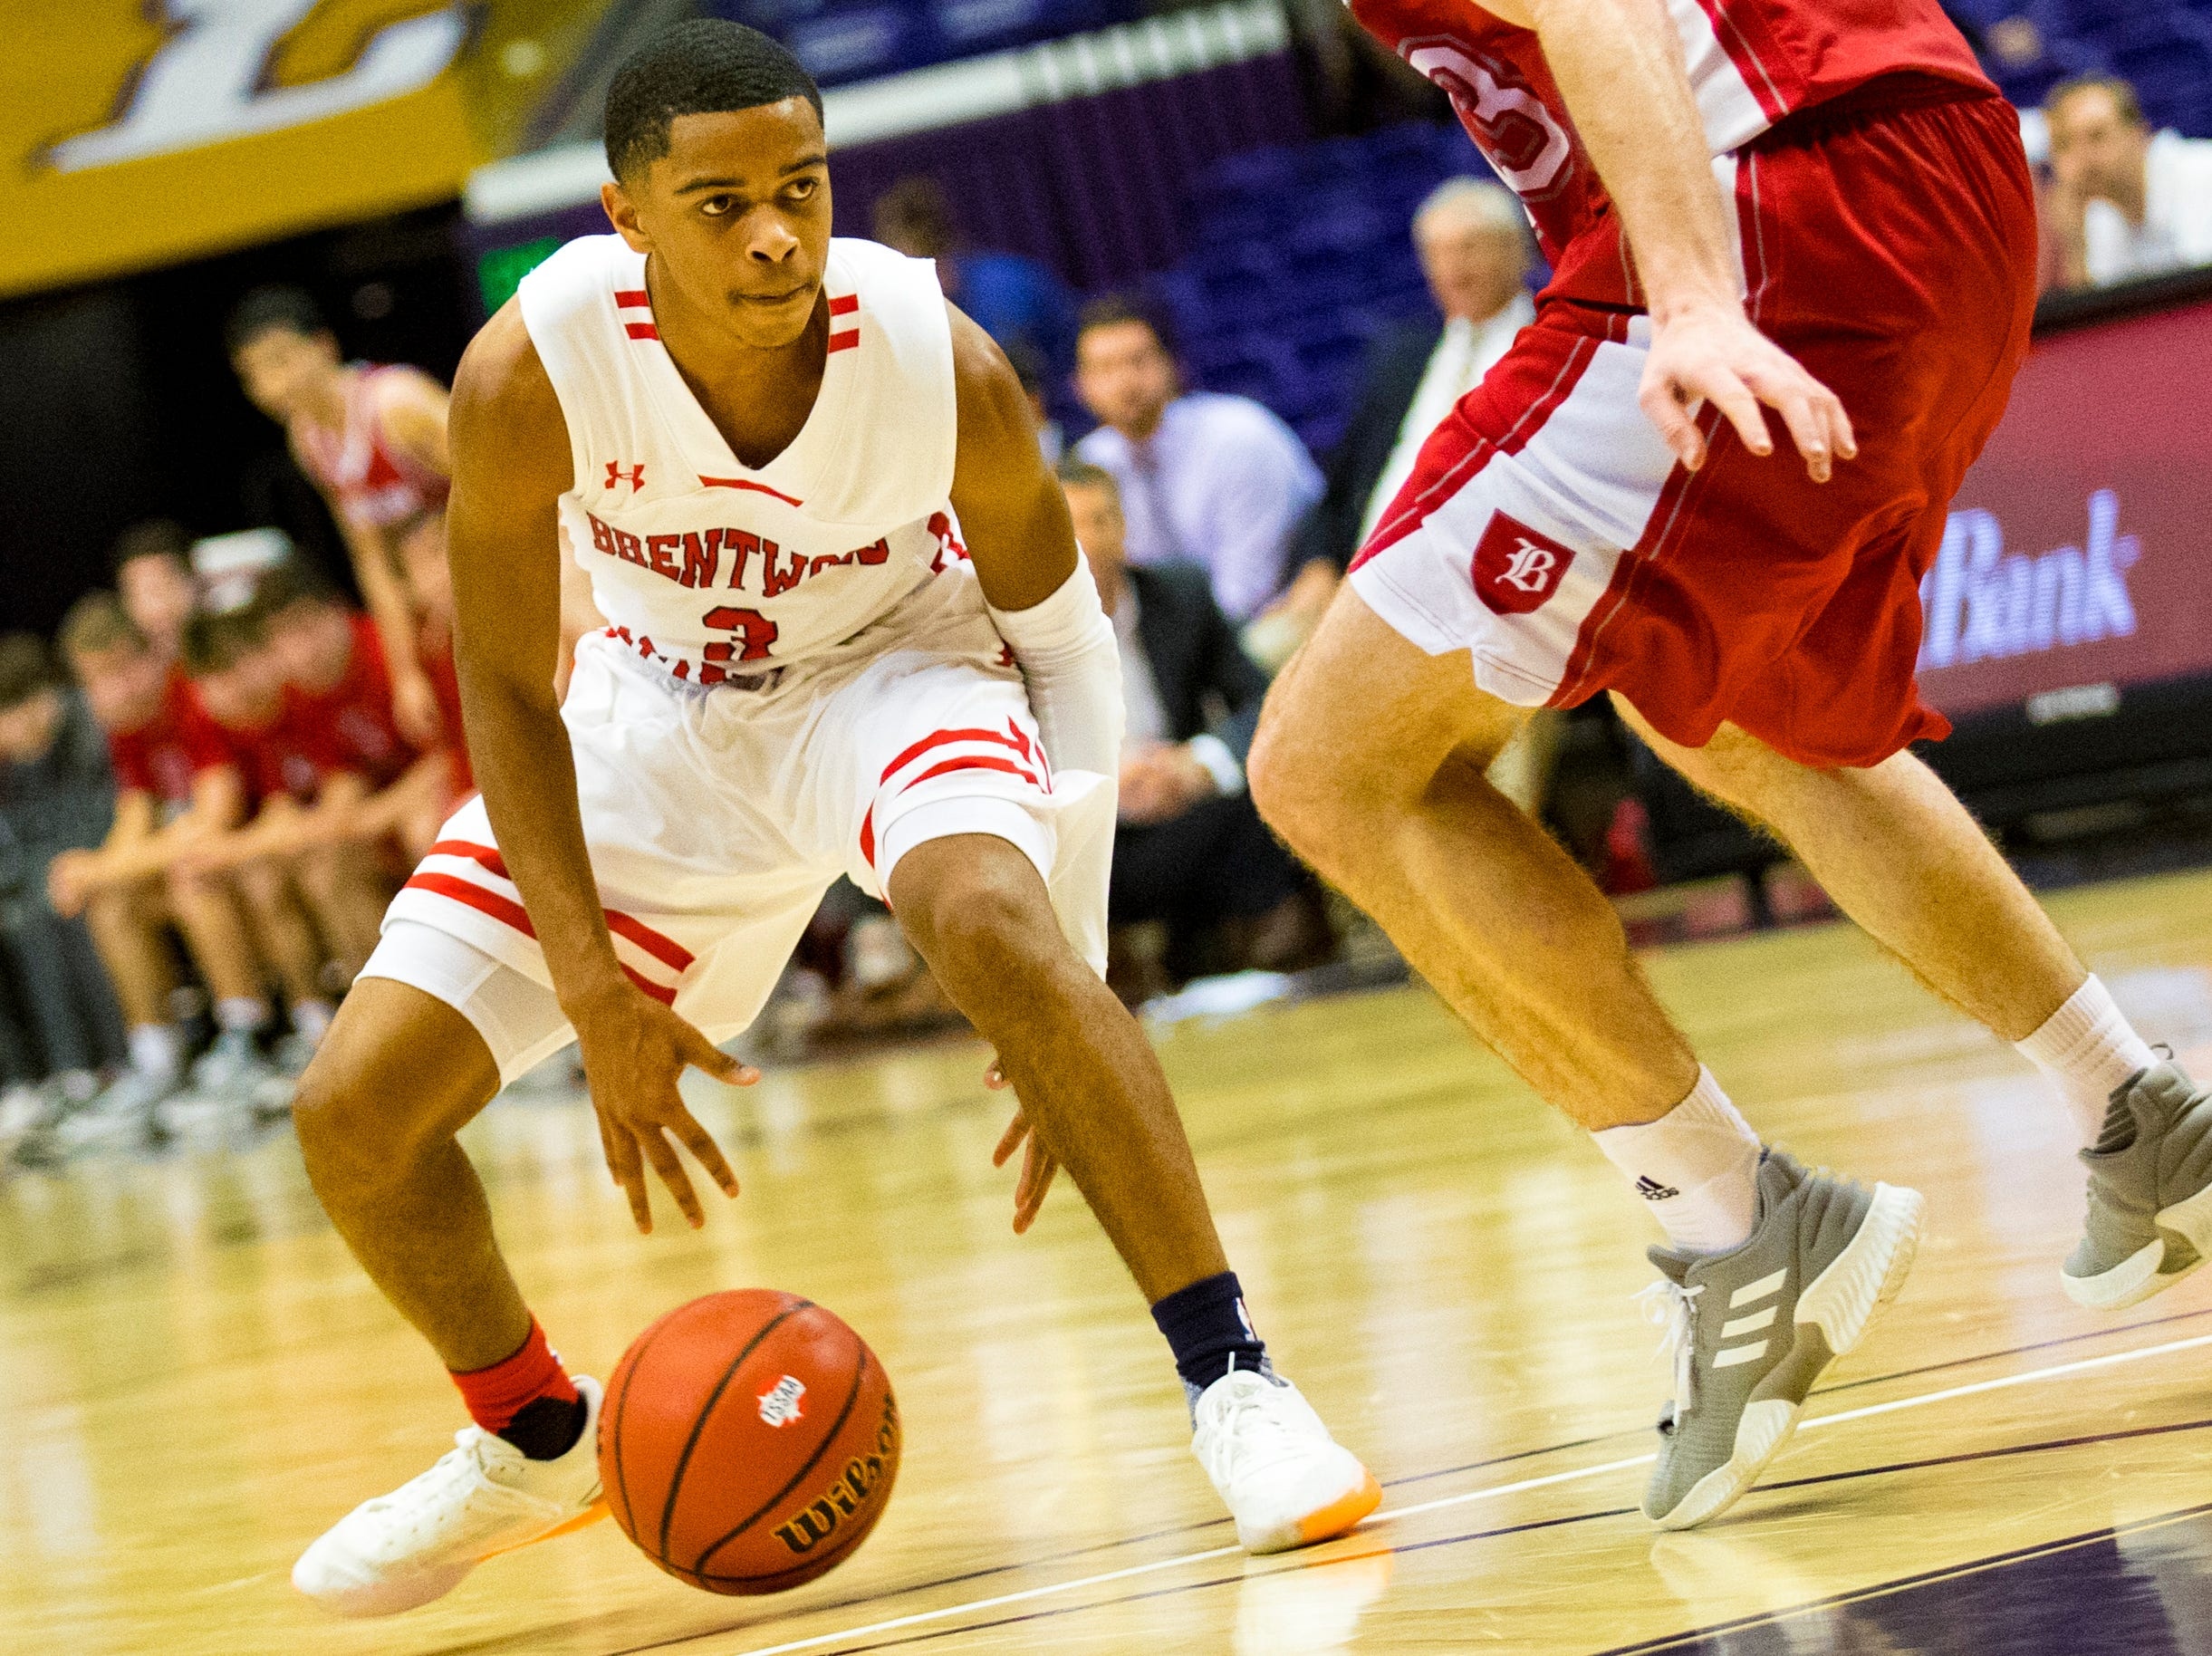 Brentwood Academy's BJ Davis (3) dribbles through his legs during Brentwood Academy's game against Baylor in the semifinal round of the TSSAA Division II Class AA State Championships at Lipscomb University's Allen Arena in Nashville on Thursday, Feb. 28, 2019.